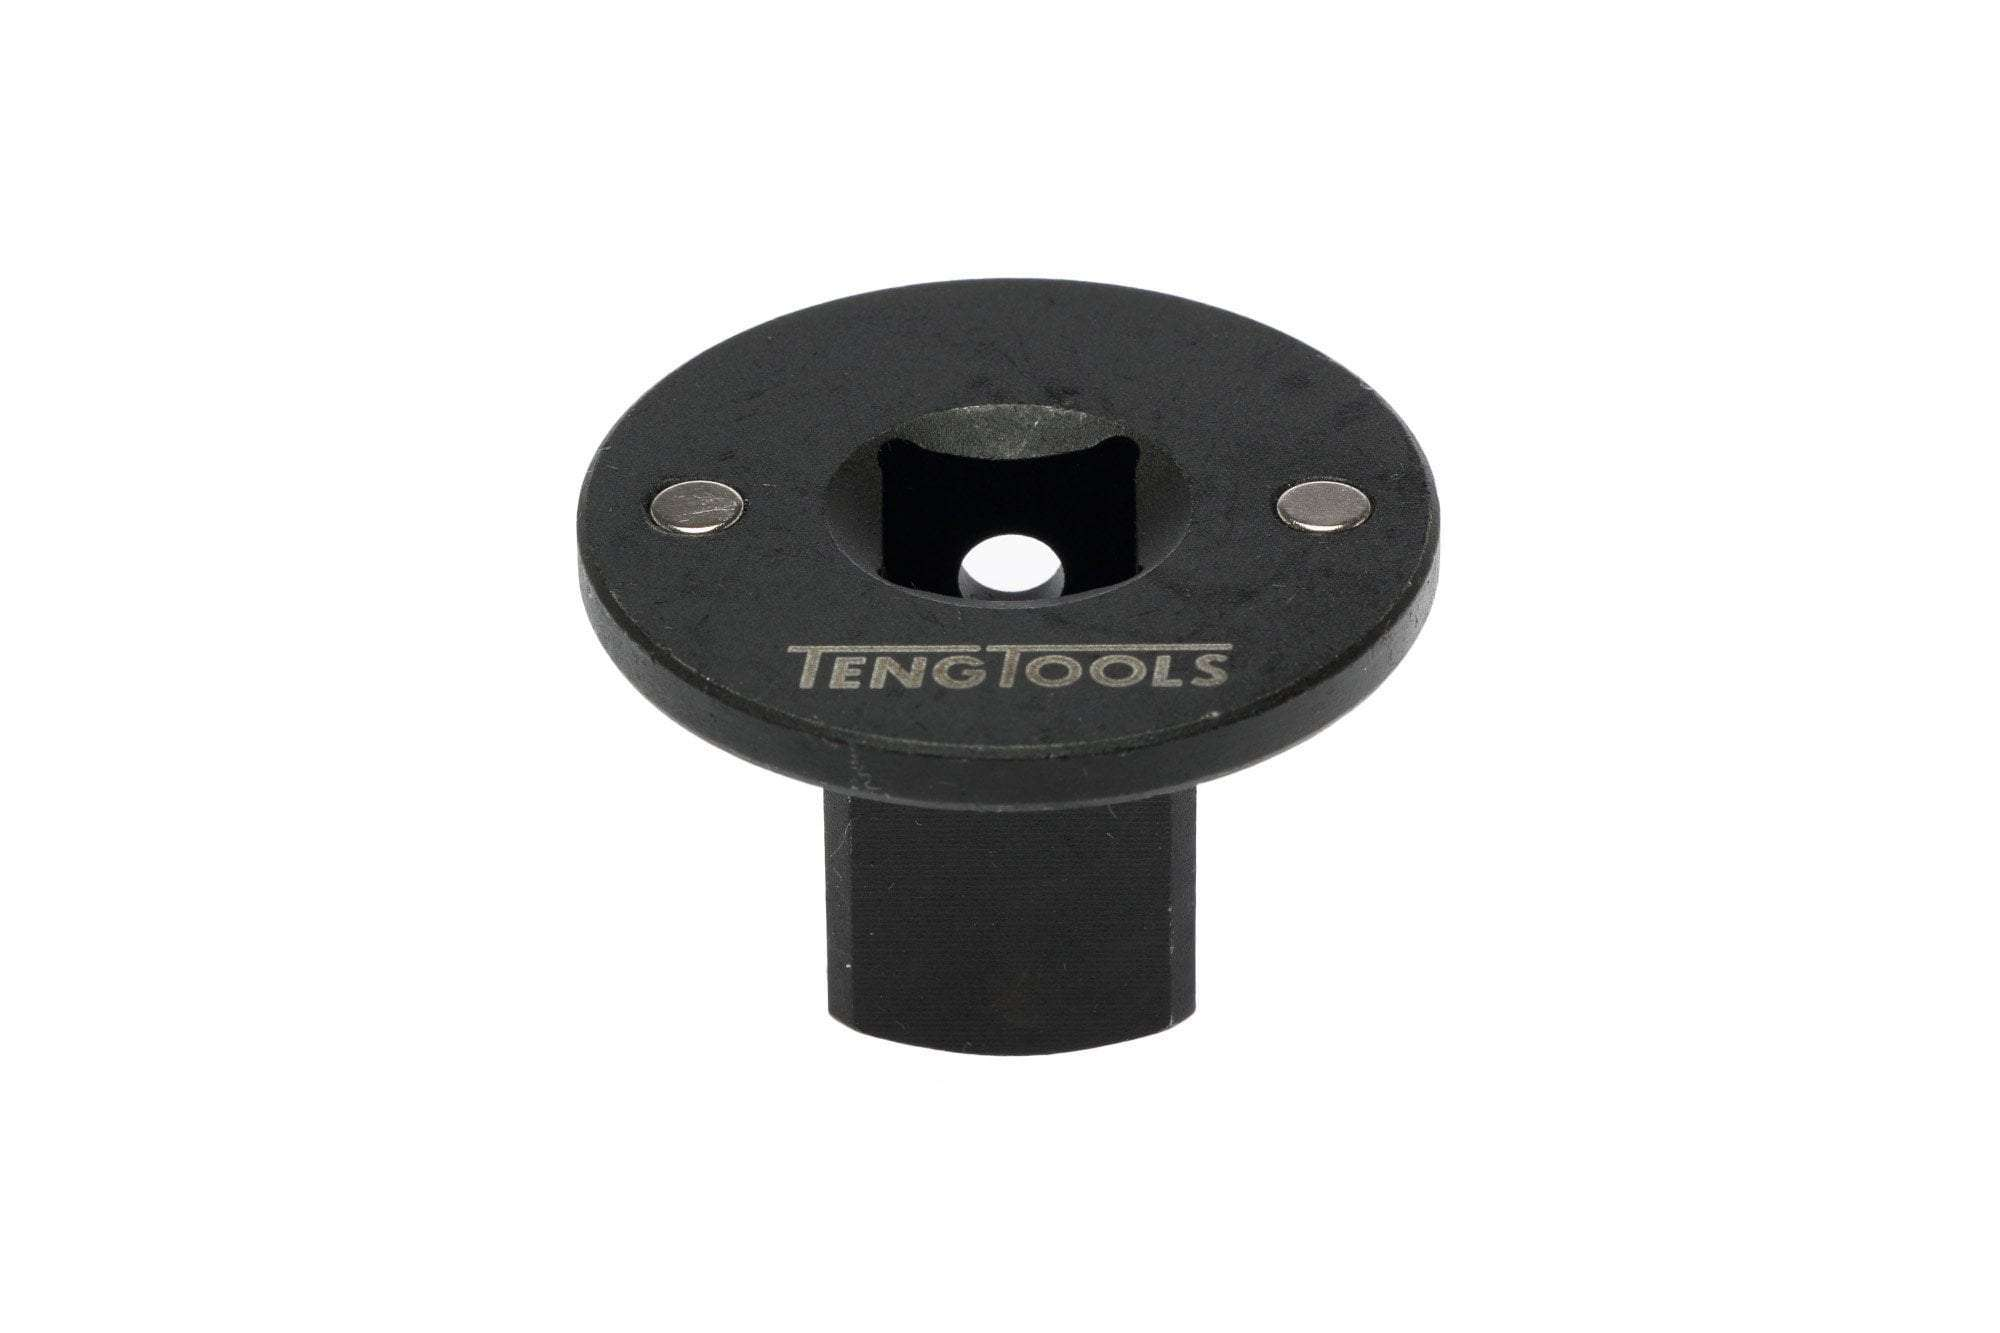 Teng Tools 1/2 Inch Drive Female - 3/4 Inch Drive Male Individual Inser Adaptor - M120037M